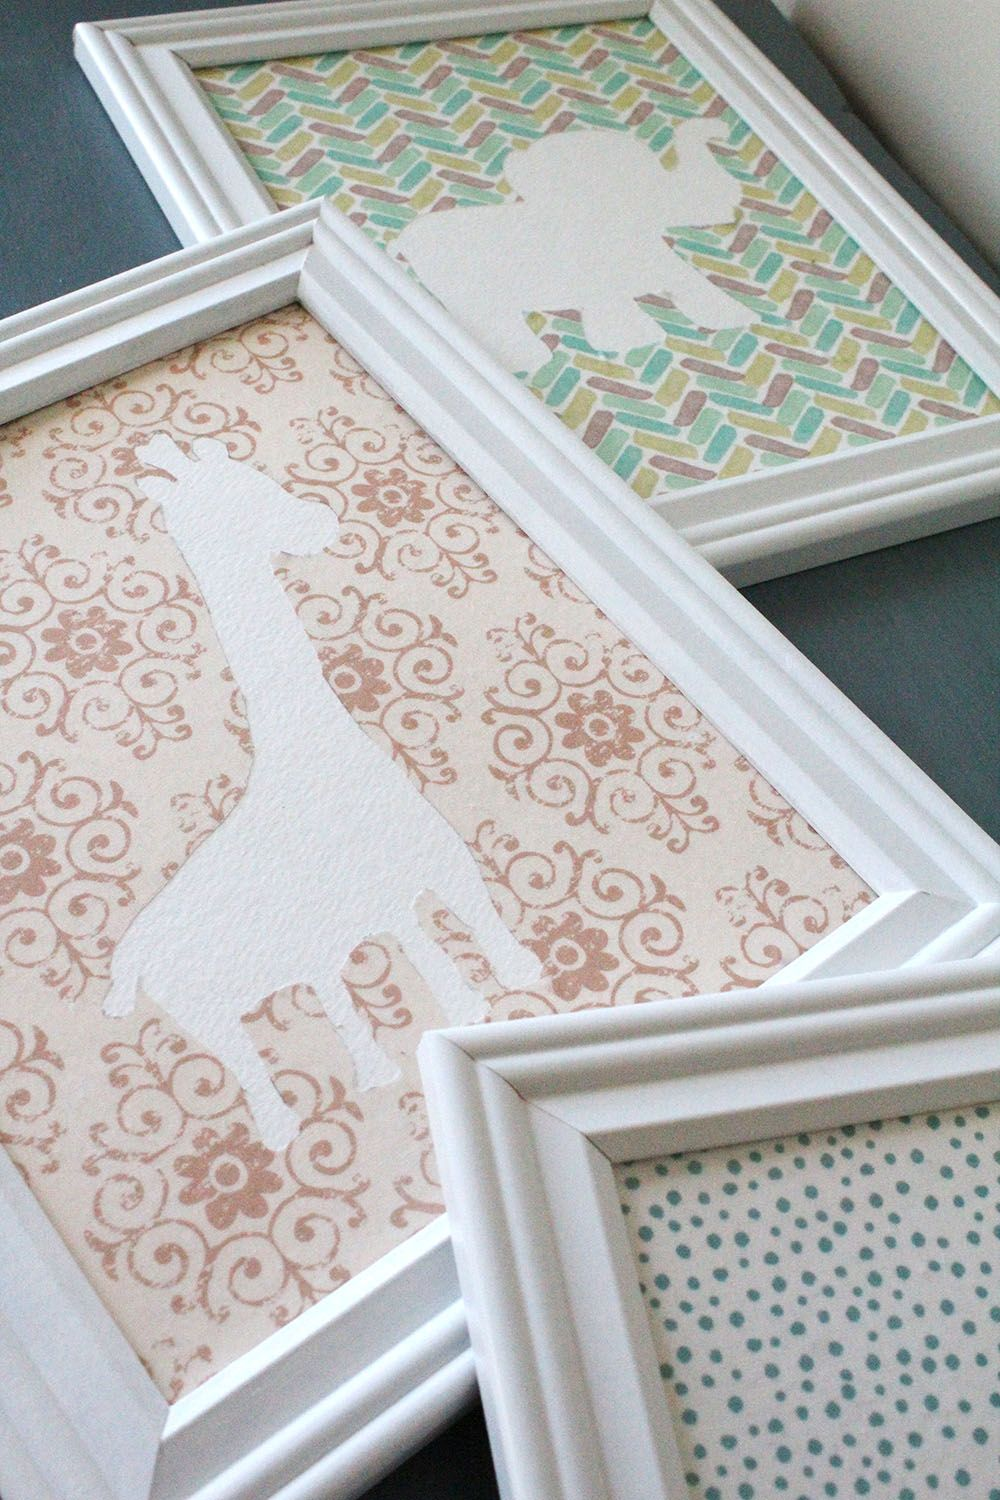 DIY Nursery Wall Art on a Budget #diywalldecor